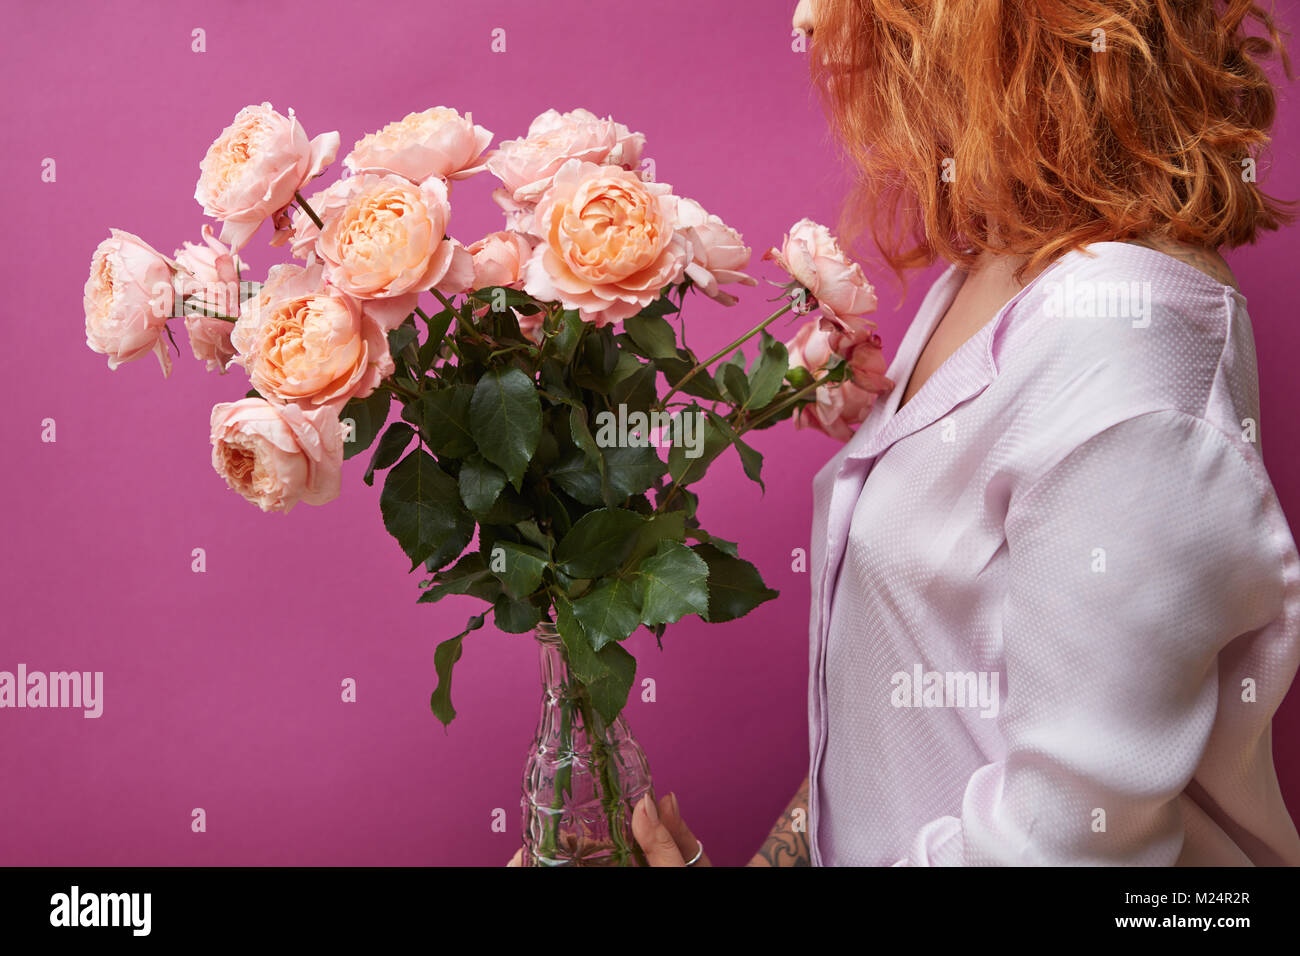 Woman Holding A Big Bouquet Of Pink Roses Stock Photo 173438911 Alamy